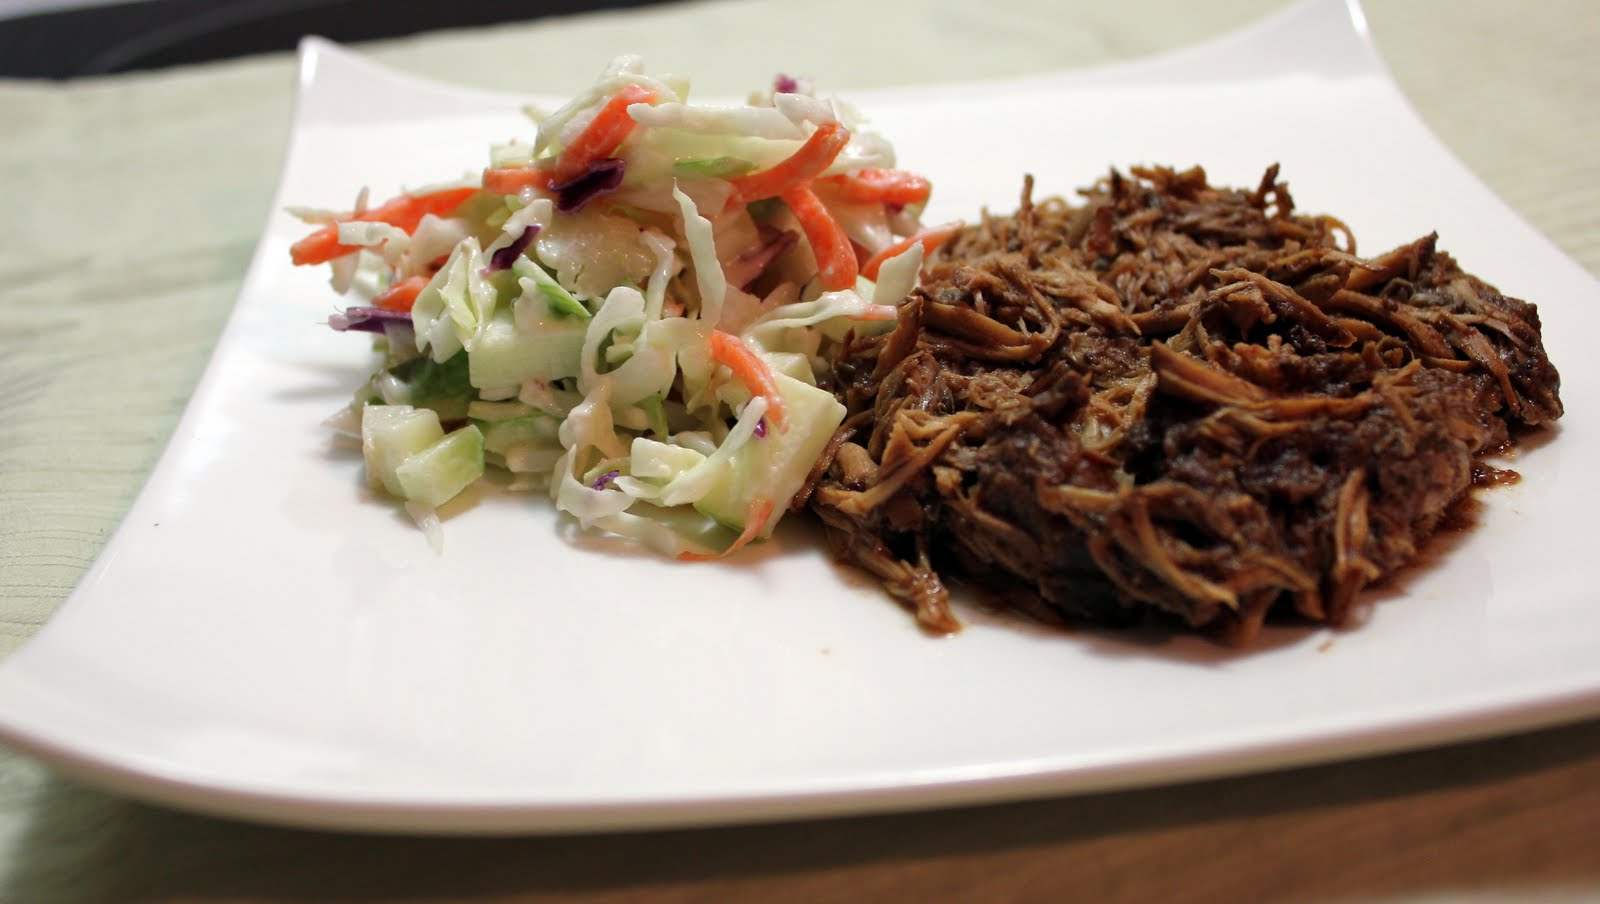 dating my husband pulled pork This is the easiest recipe for pulled pork that's seasoned to perfection with a dry rub mix my husband and i love flavour hitting spices but are sooks when it.